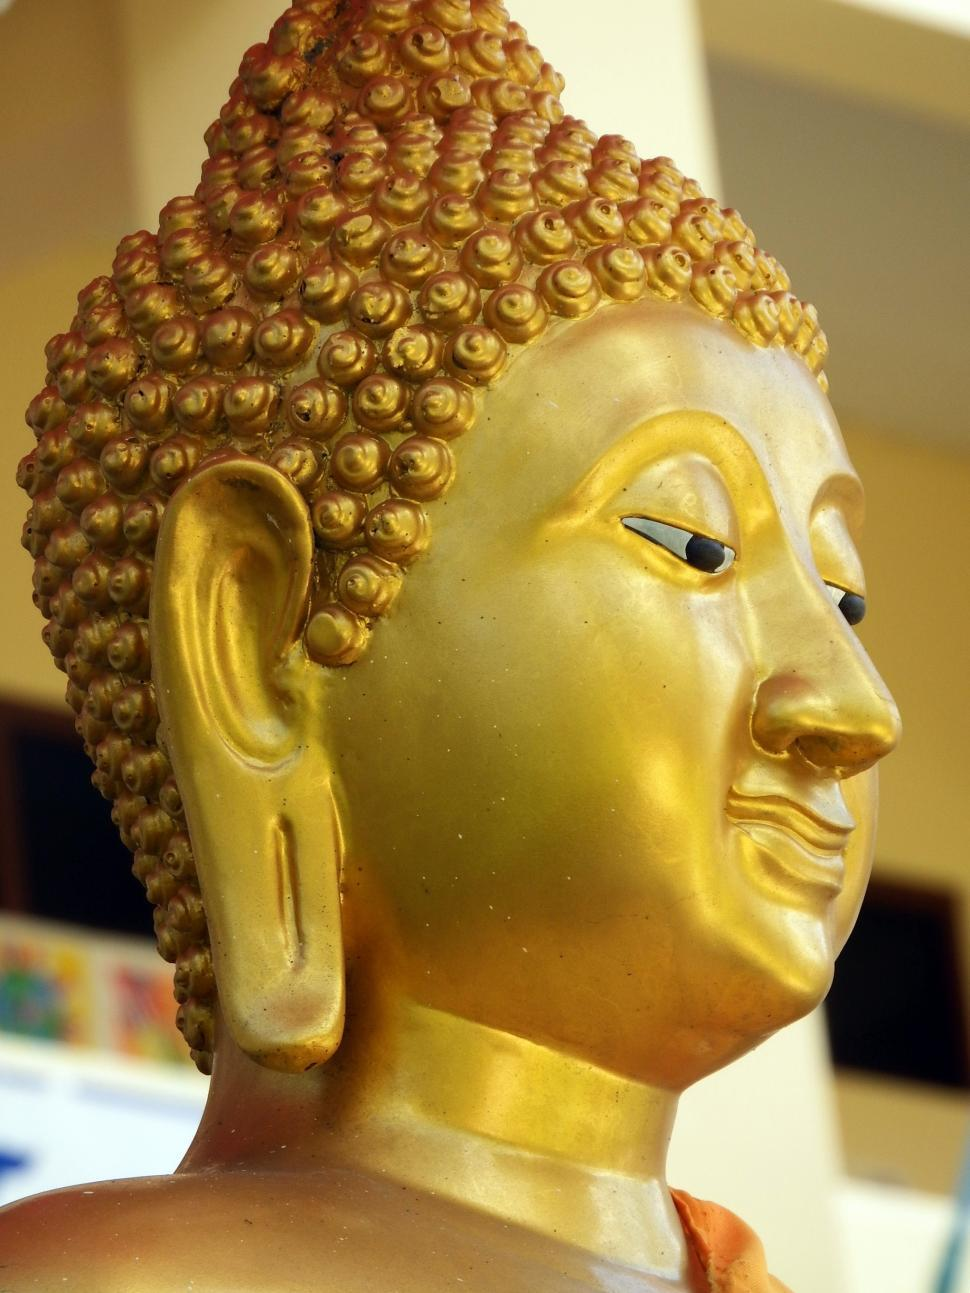 Download Free Stock Photo of Golden Buddha Face 2